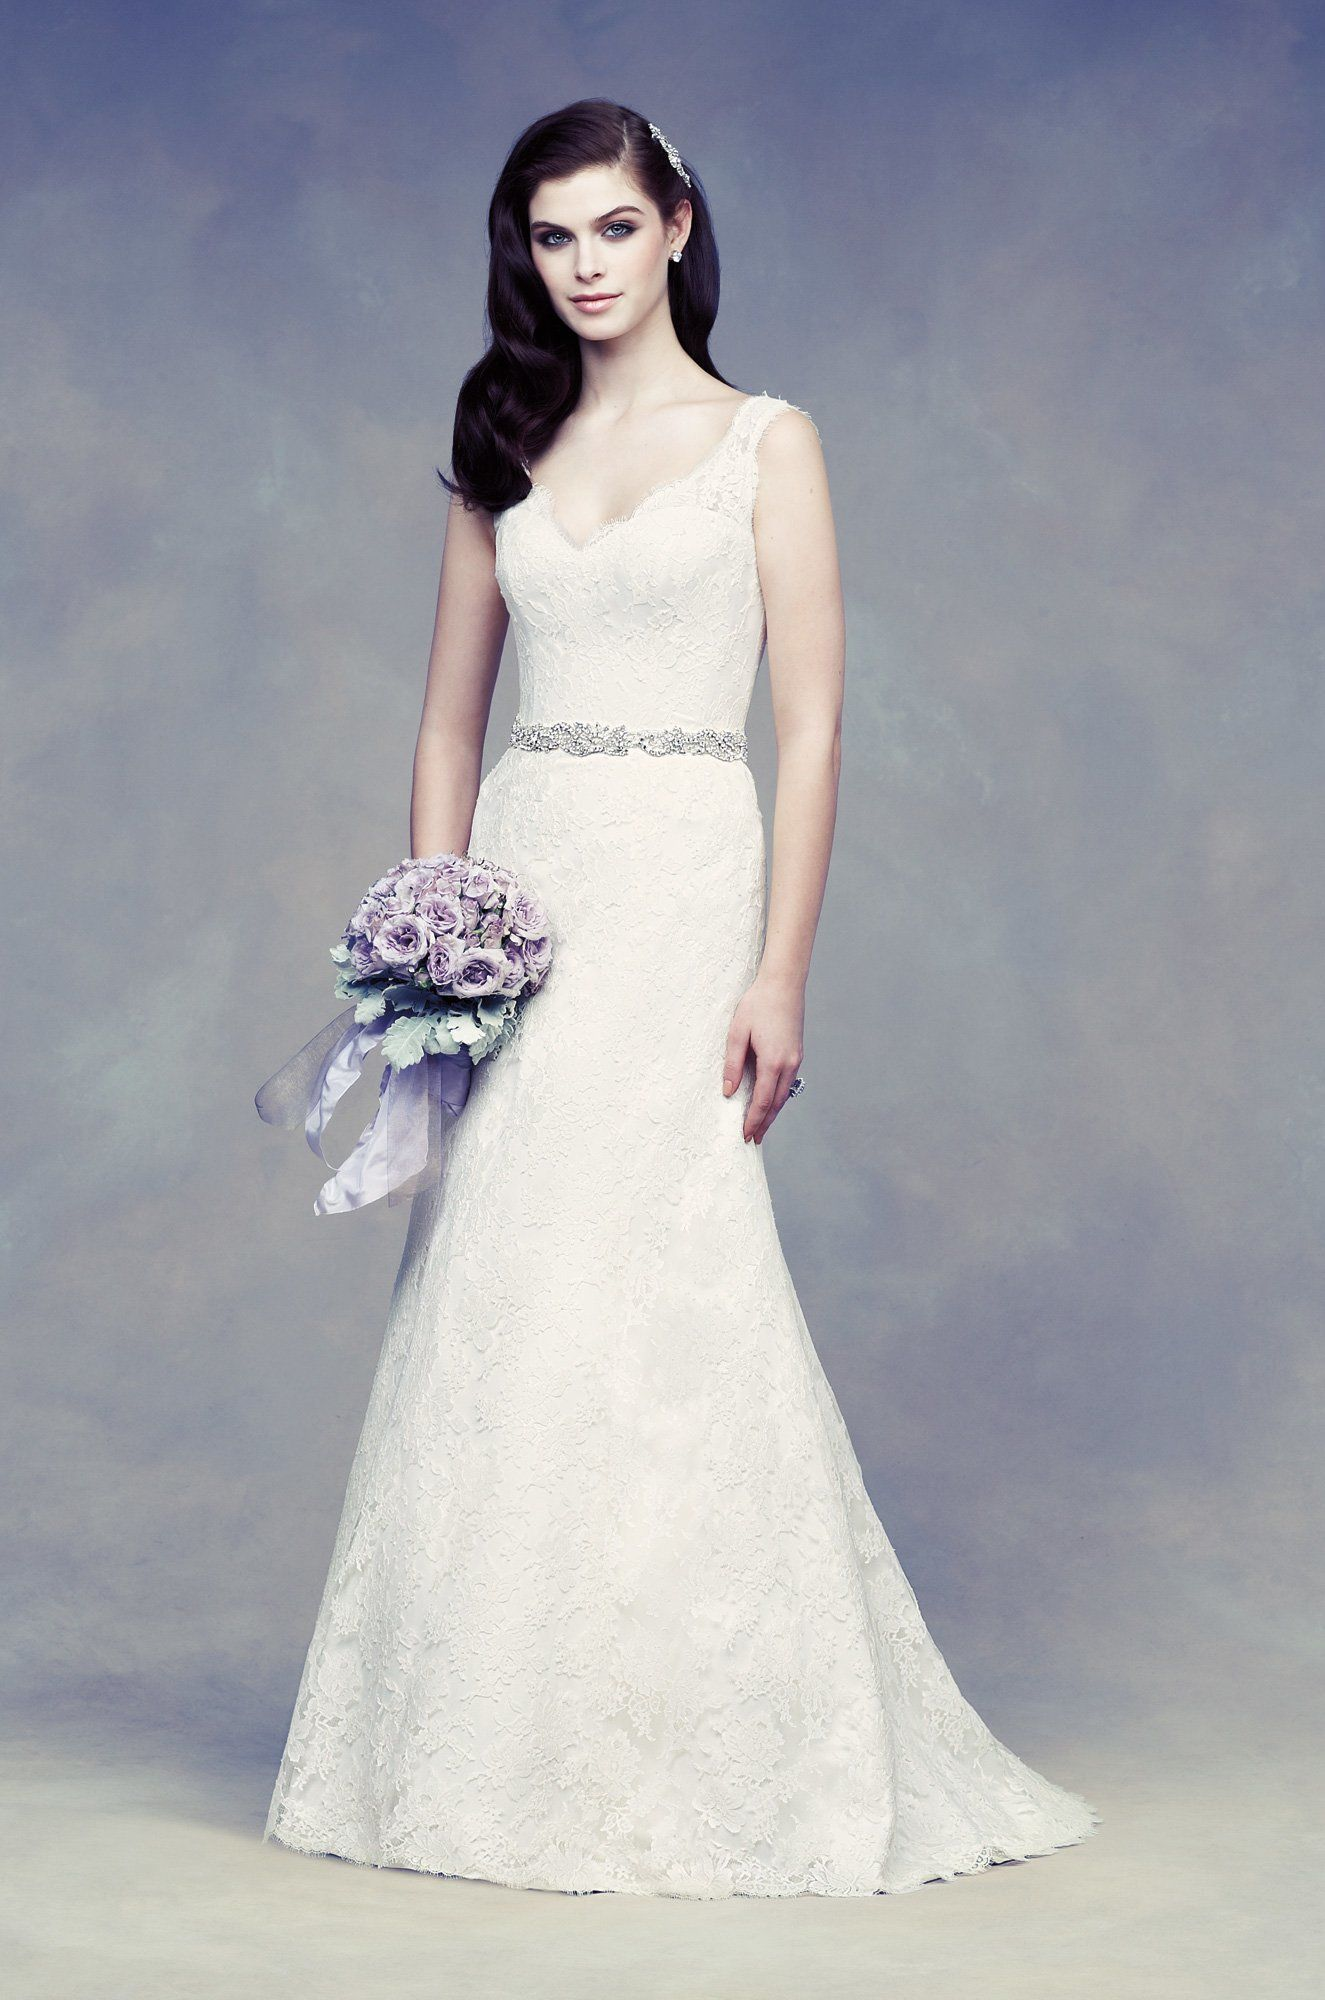 View chantilly lace wedding dress style from paloma blanca